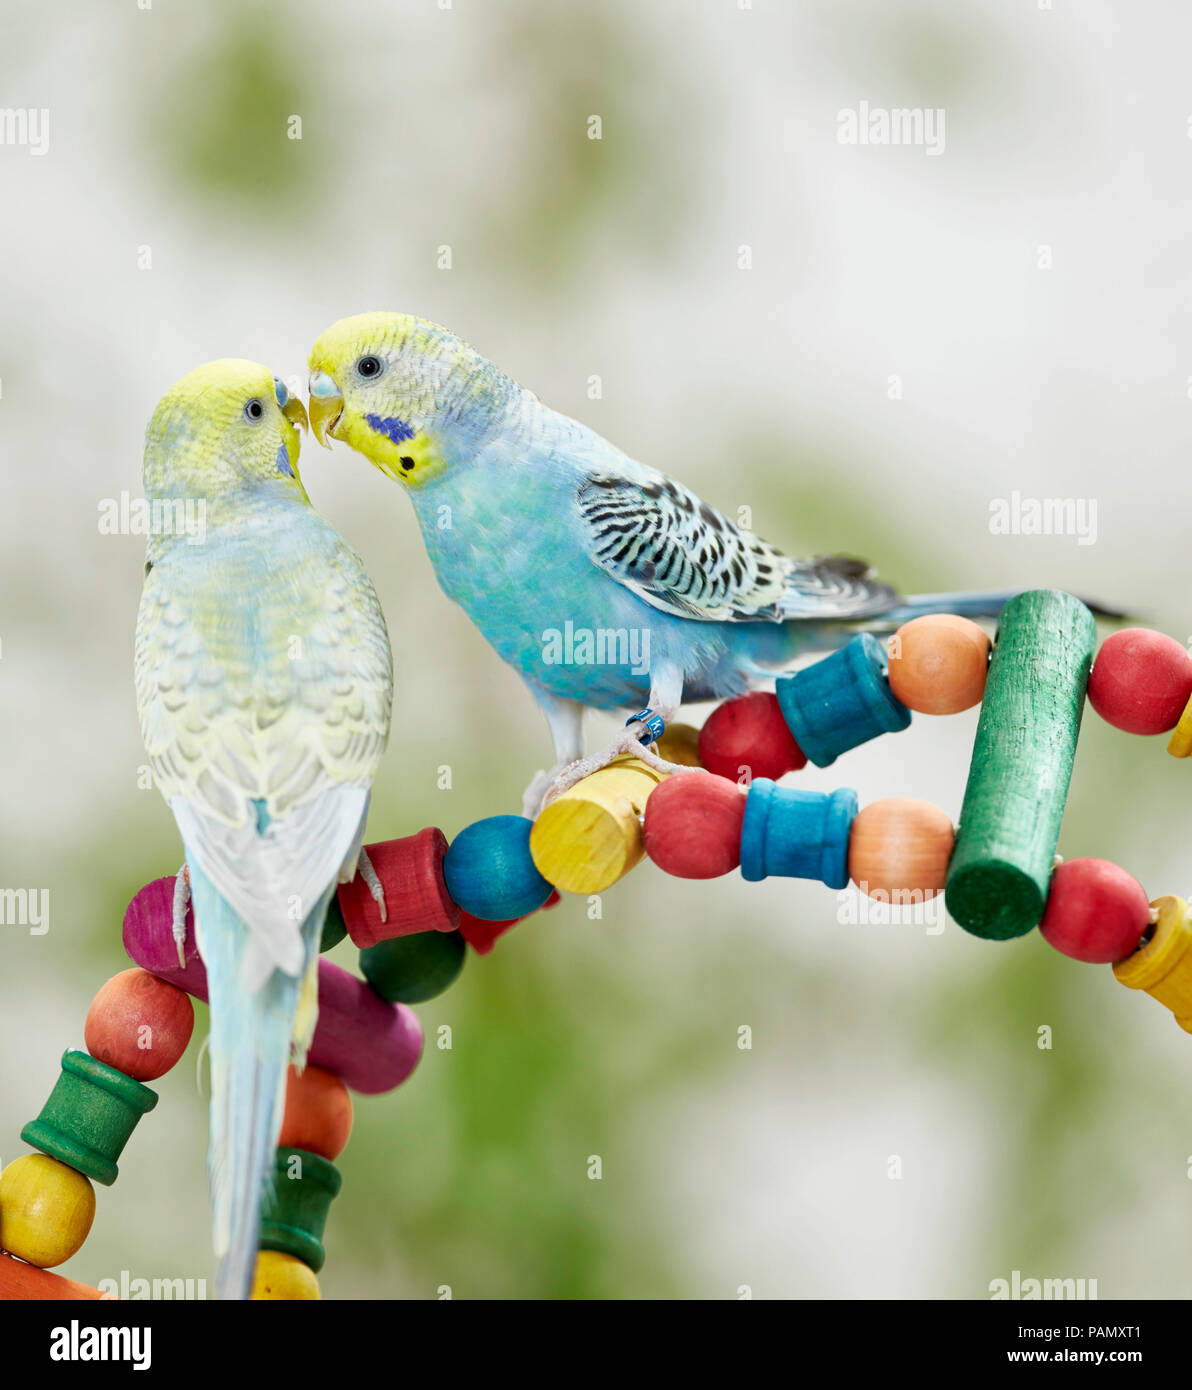 Rainbow Budgerigar, Budgie (Melopsittacus undulatus). Two adults billing on a multicolored toy. Germany - Stock Image